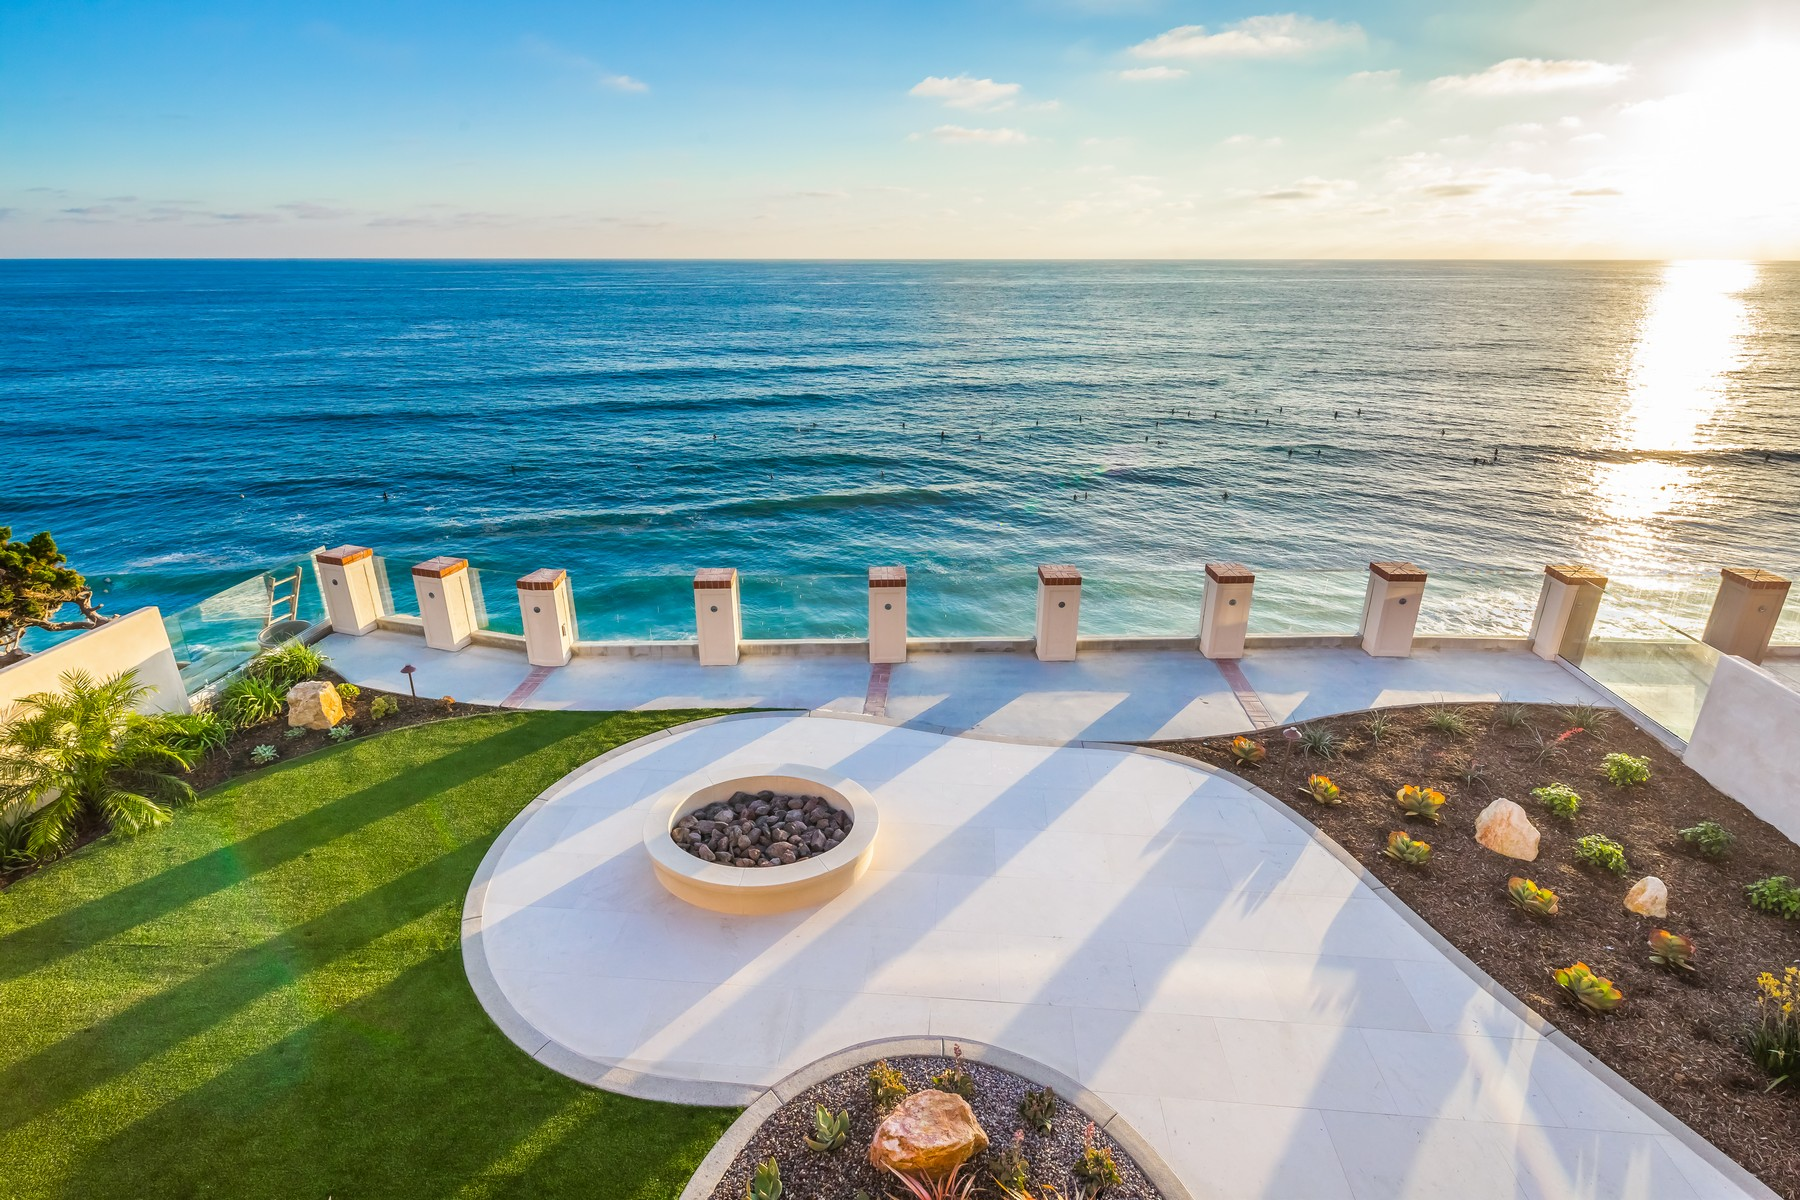 Additional photo for property listing at 824 Neptune Avenue  Encinitas, Californie 92024 États-Unis